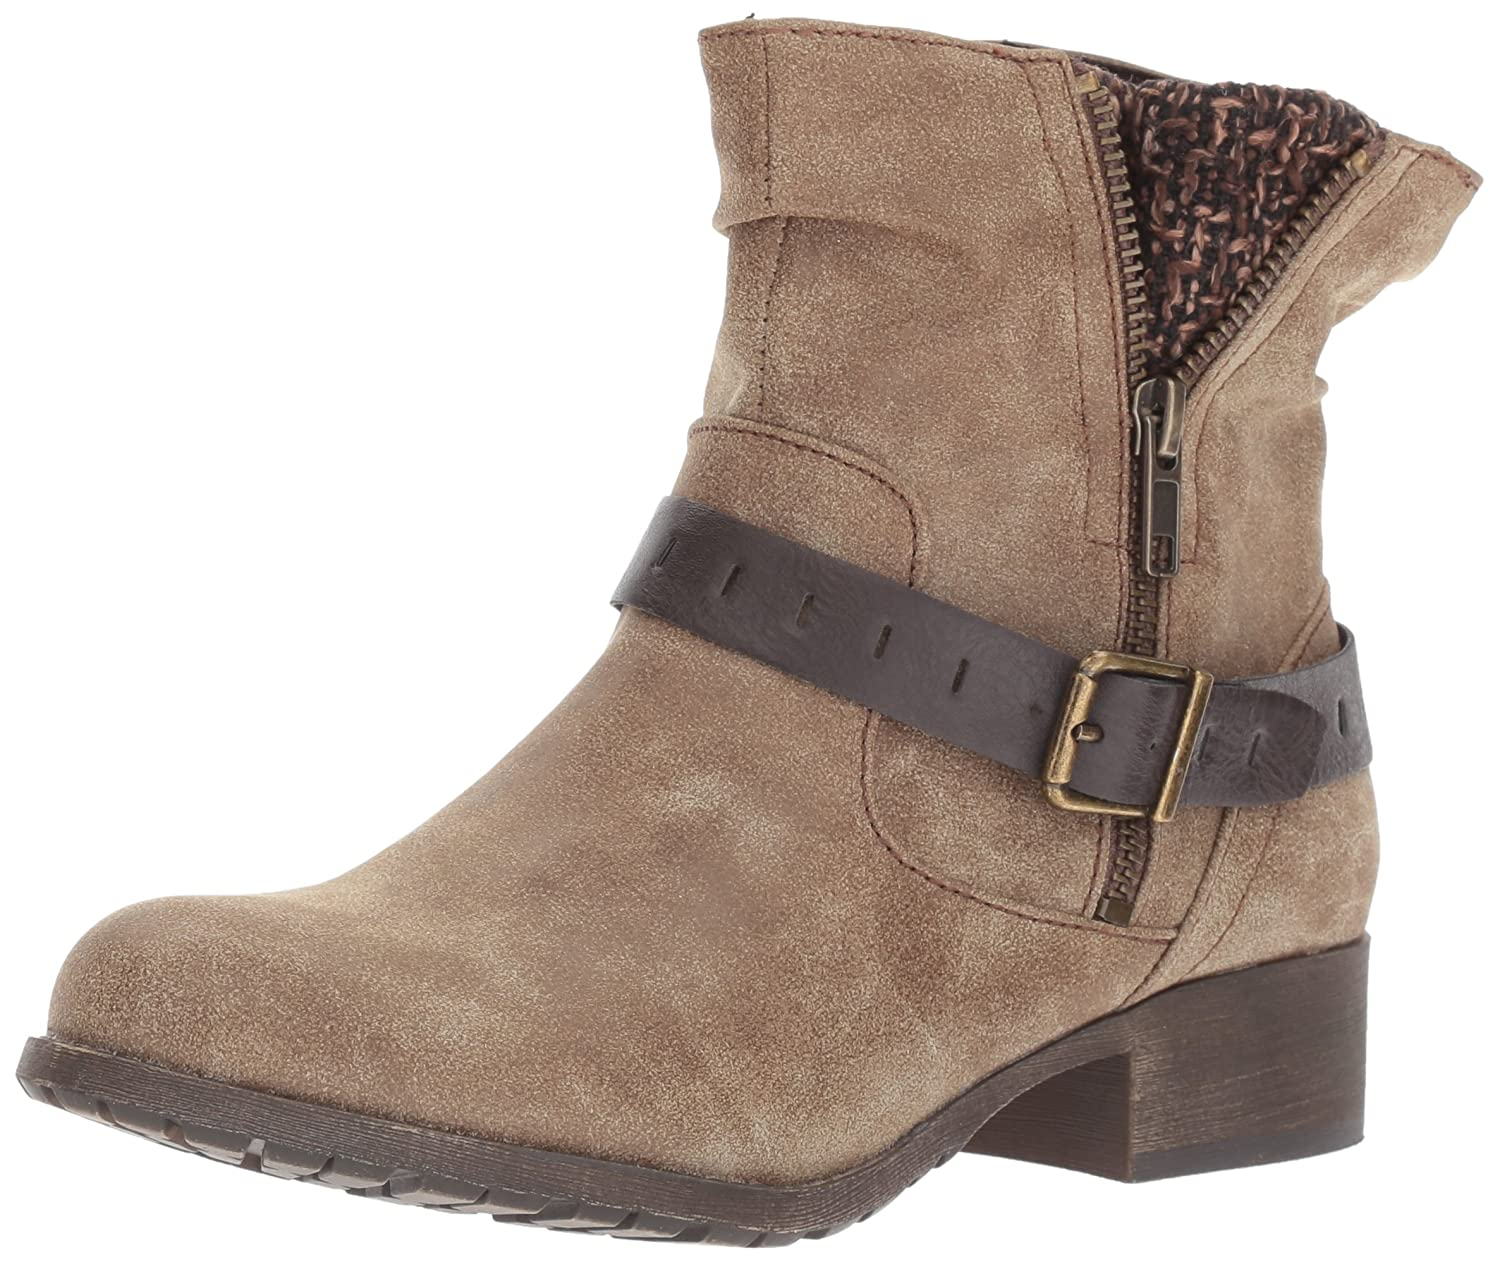 Jellypop Women's Cate Engineer Boot B06WVDQSR8 9 B(M) US|Brown Distress Small